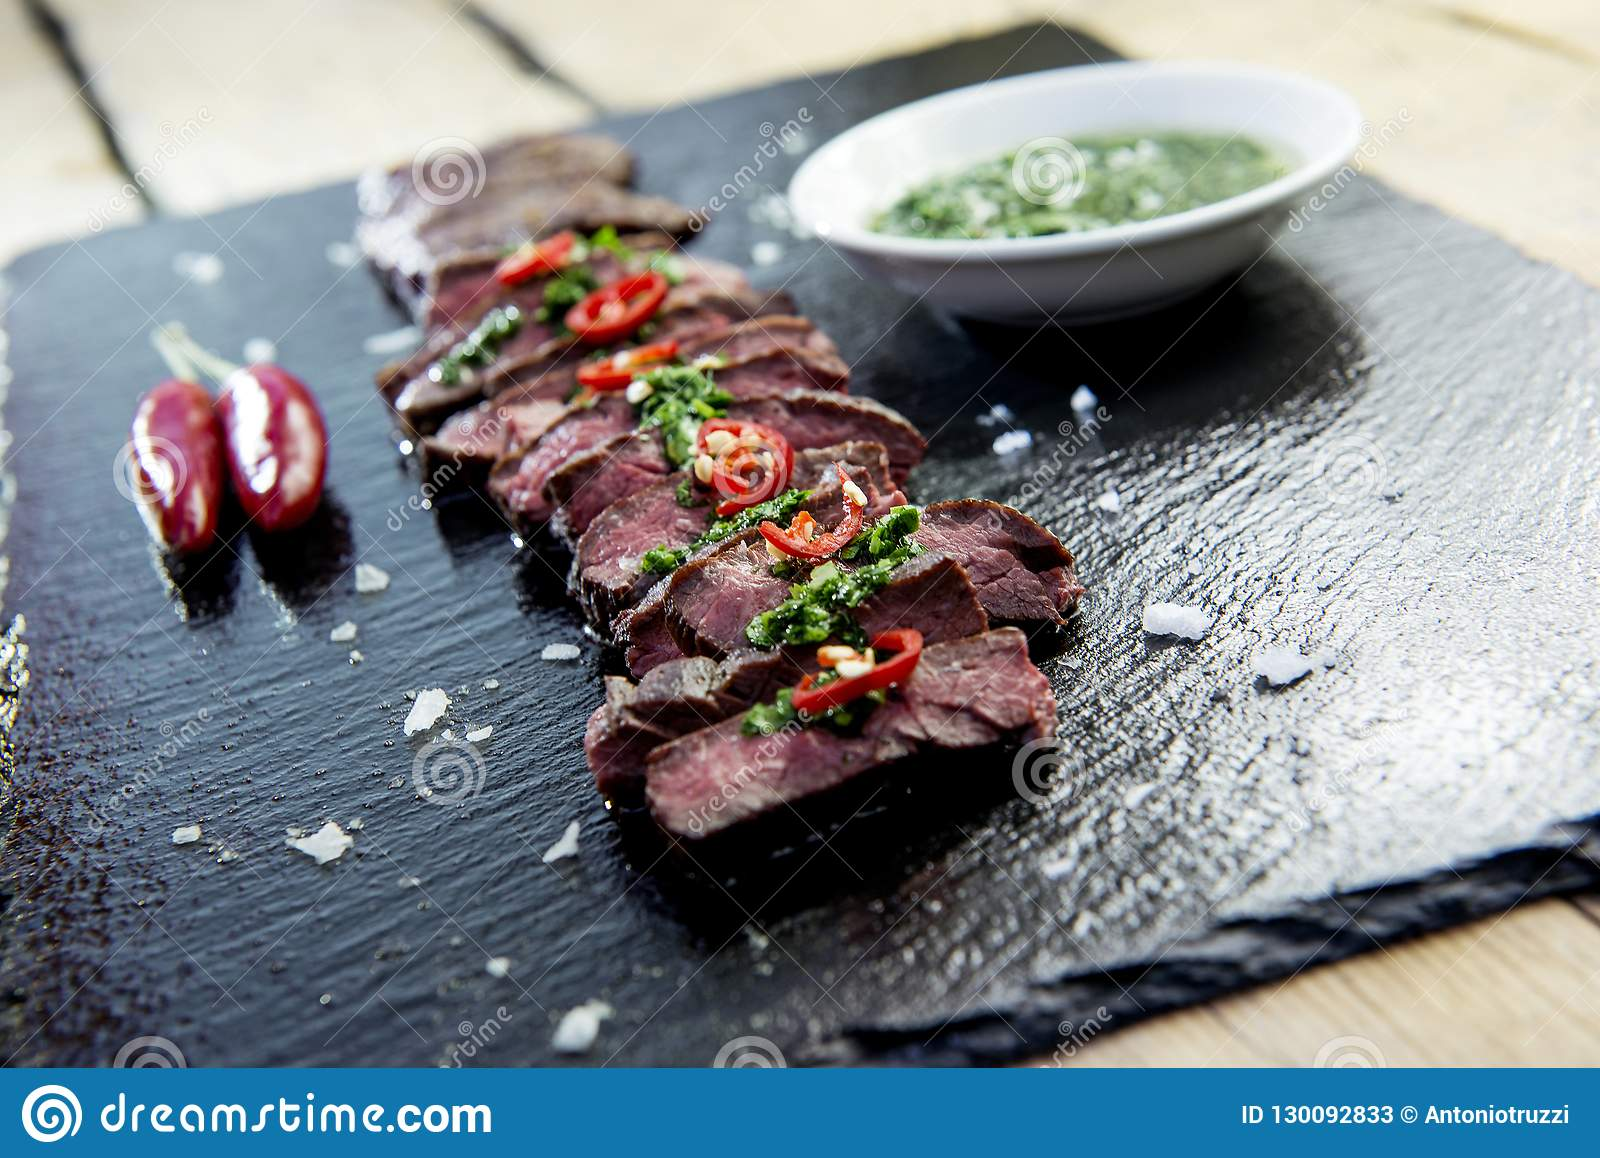 Black Stone Plate With Skirt Steak Pepper And Chimichurri Sauce Stock Image Image Of Food Cooked 130092833